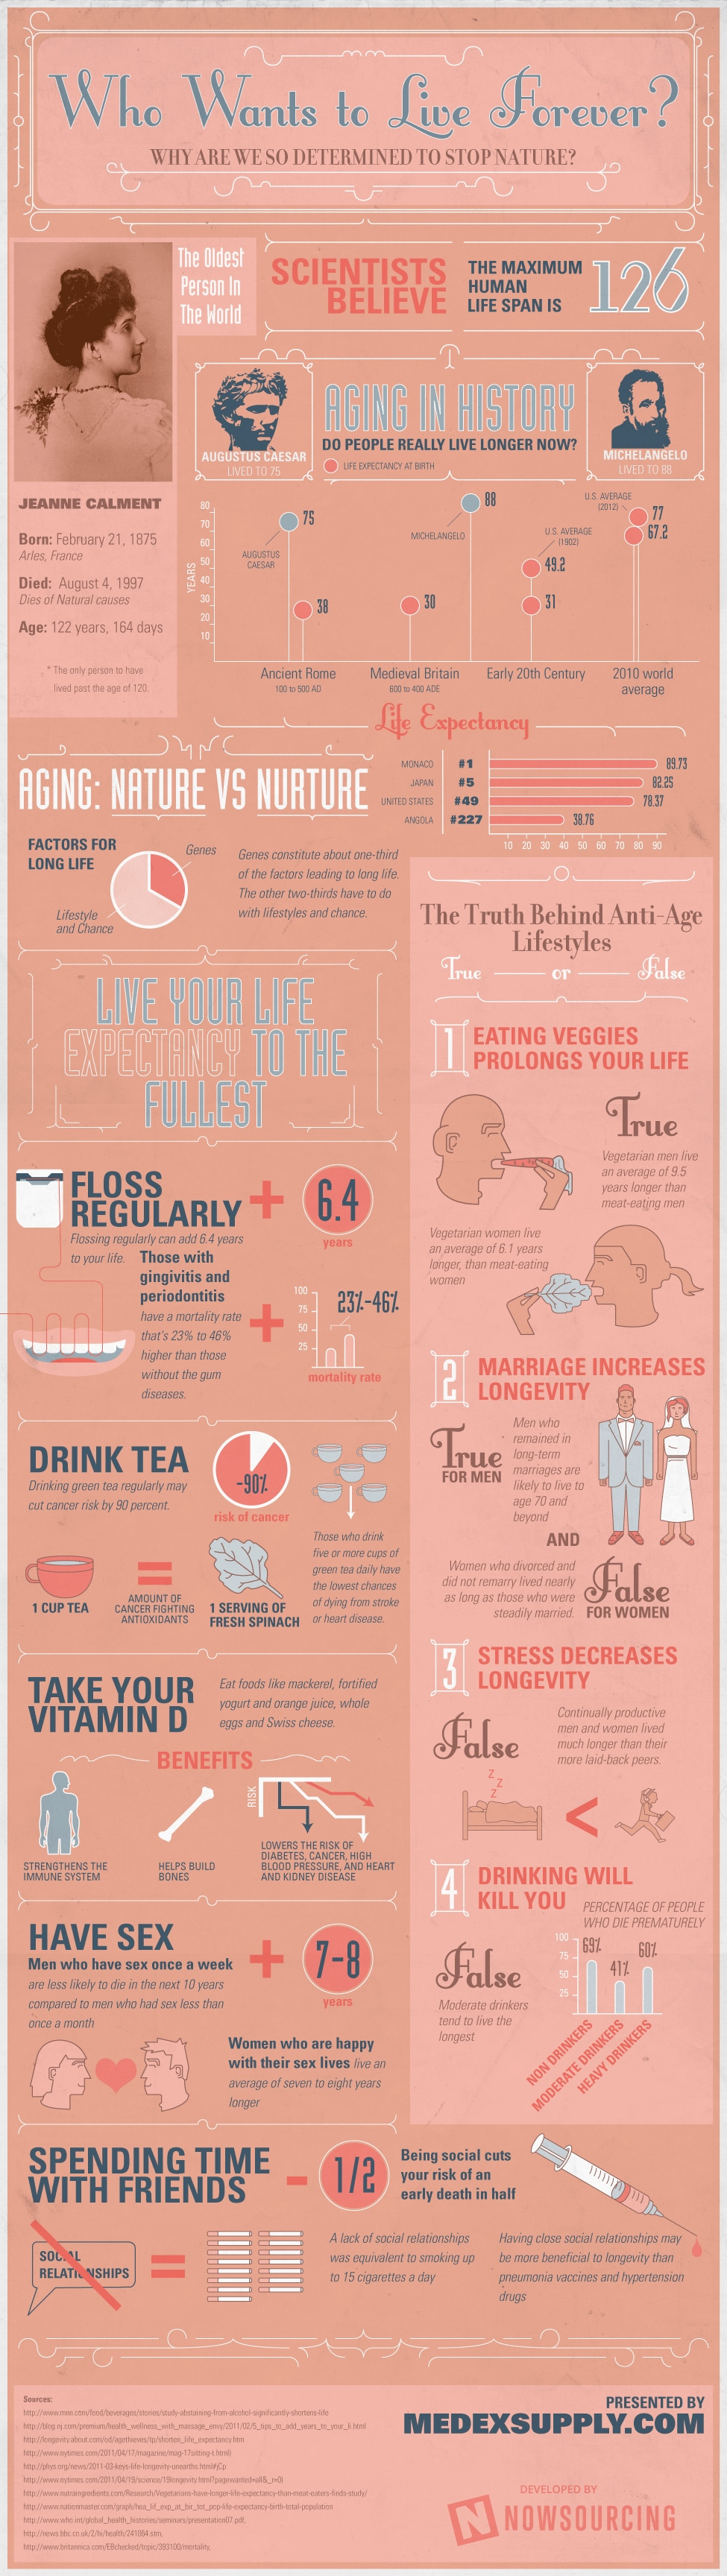 How To: Extend Your Lifespan & Live A Longer Life [Infographic]